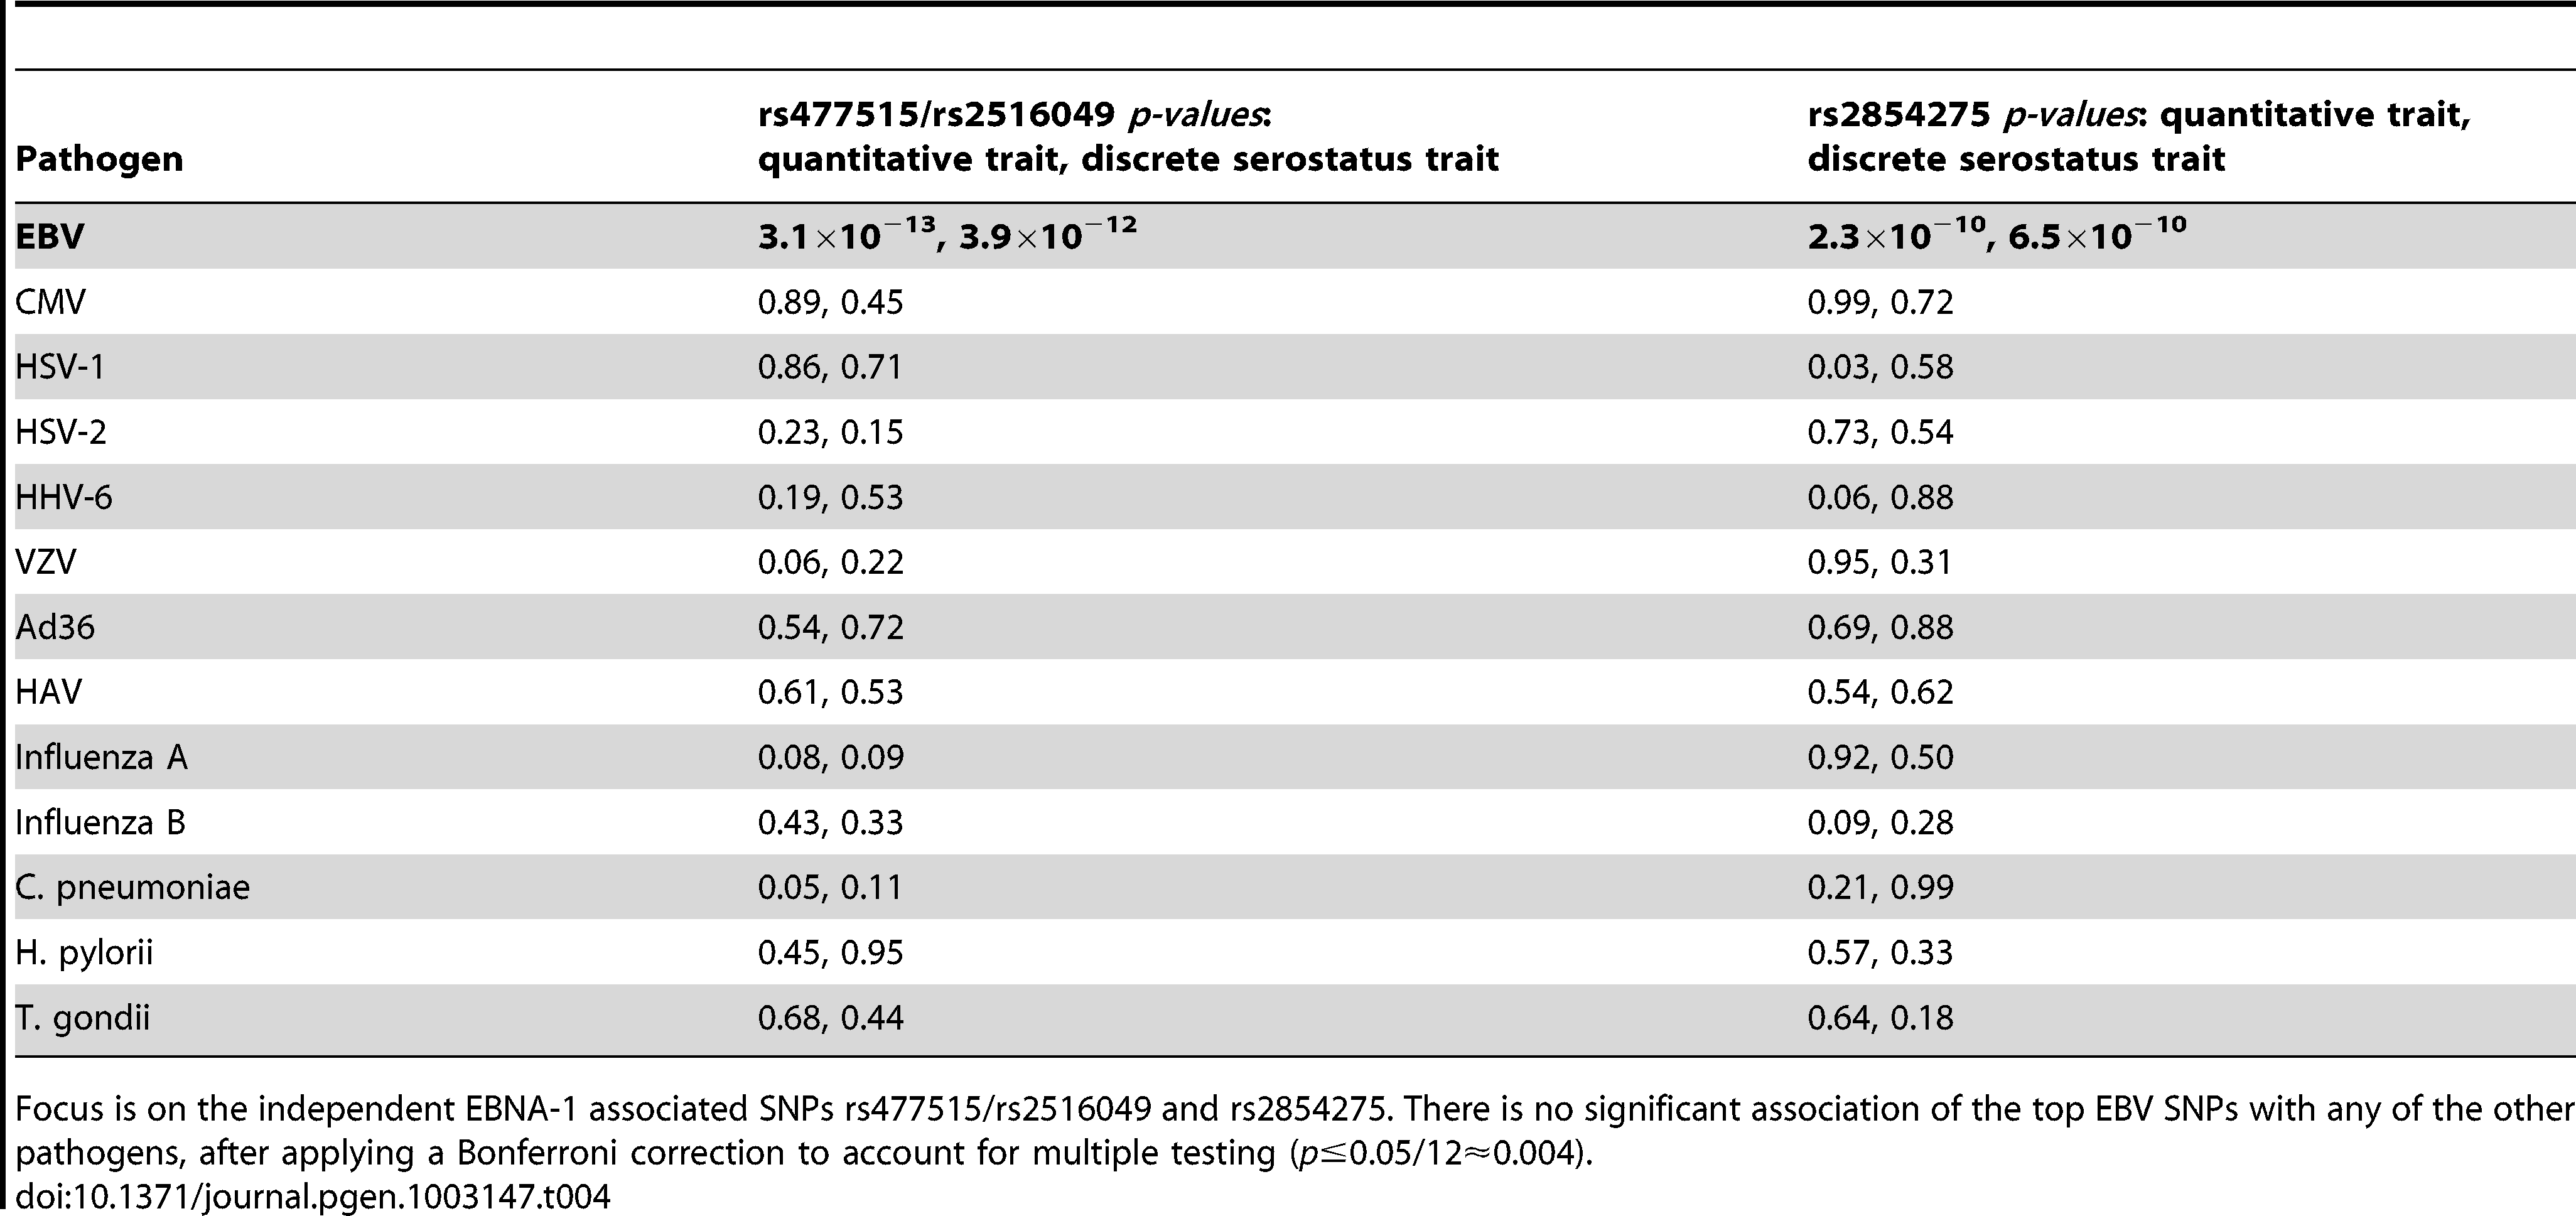 Association (conditional on linkage) results for 12 comparative pathogens.